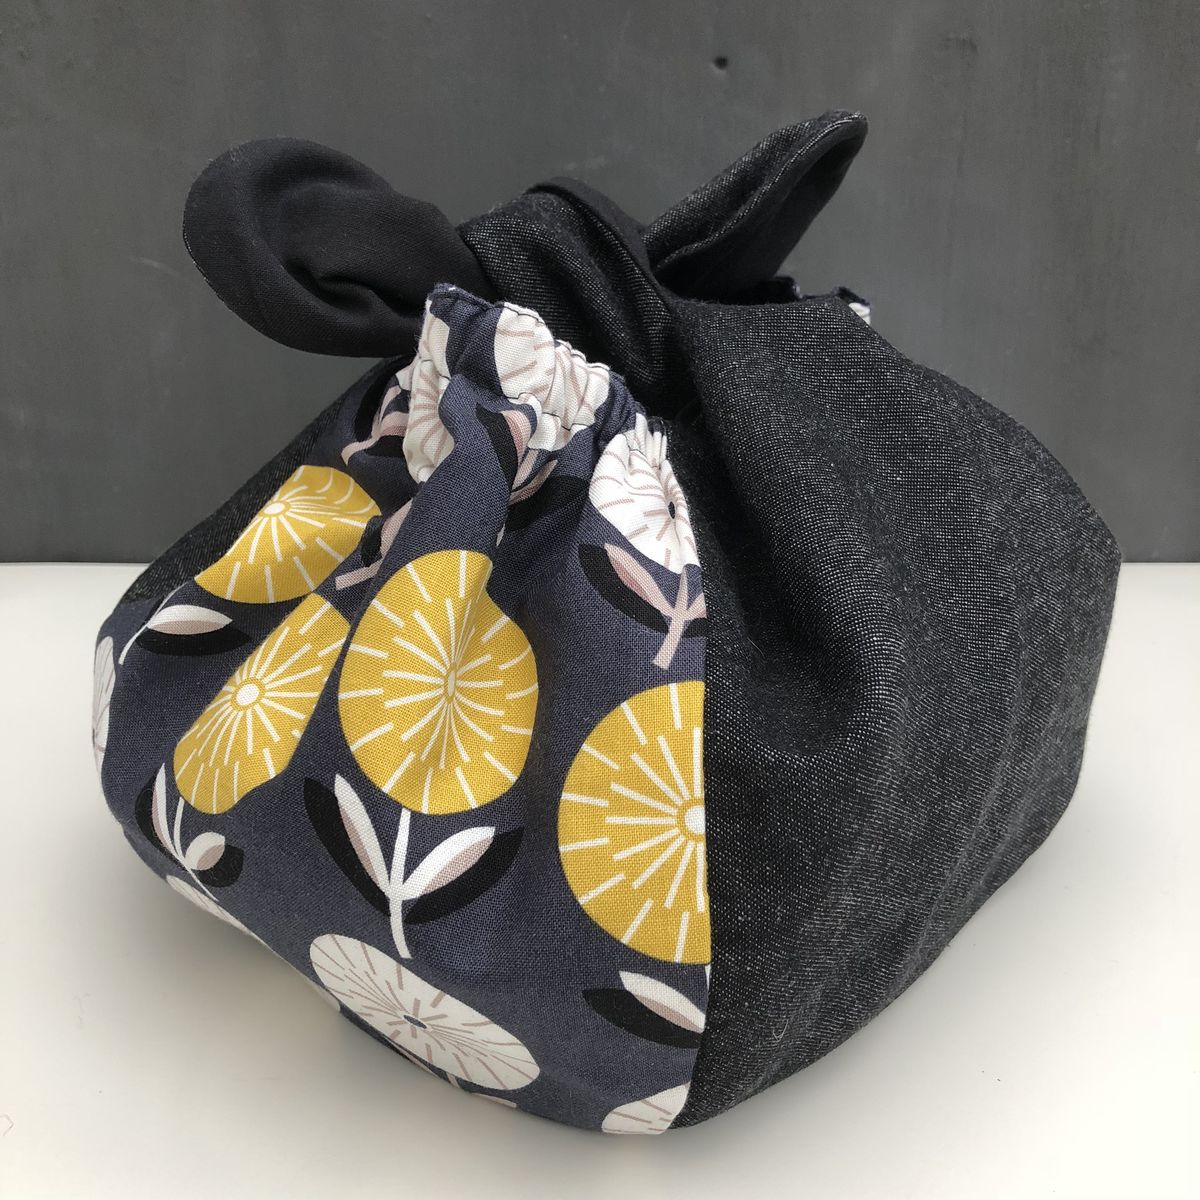 Japanese style cotton knotted fabric bag - monochrome/mustard - product images  of